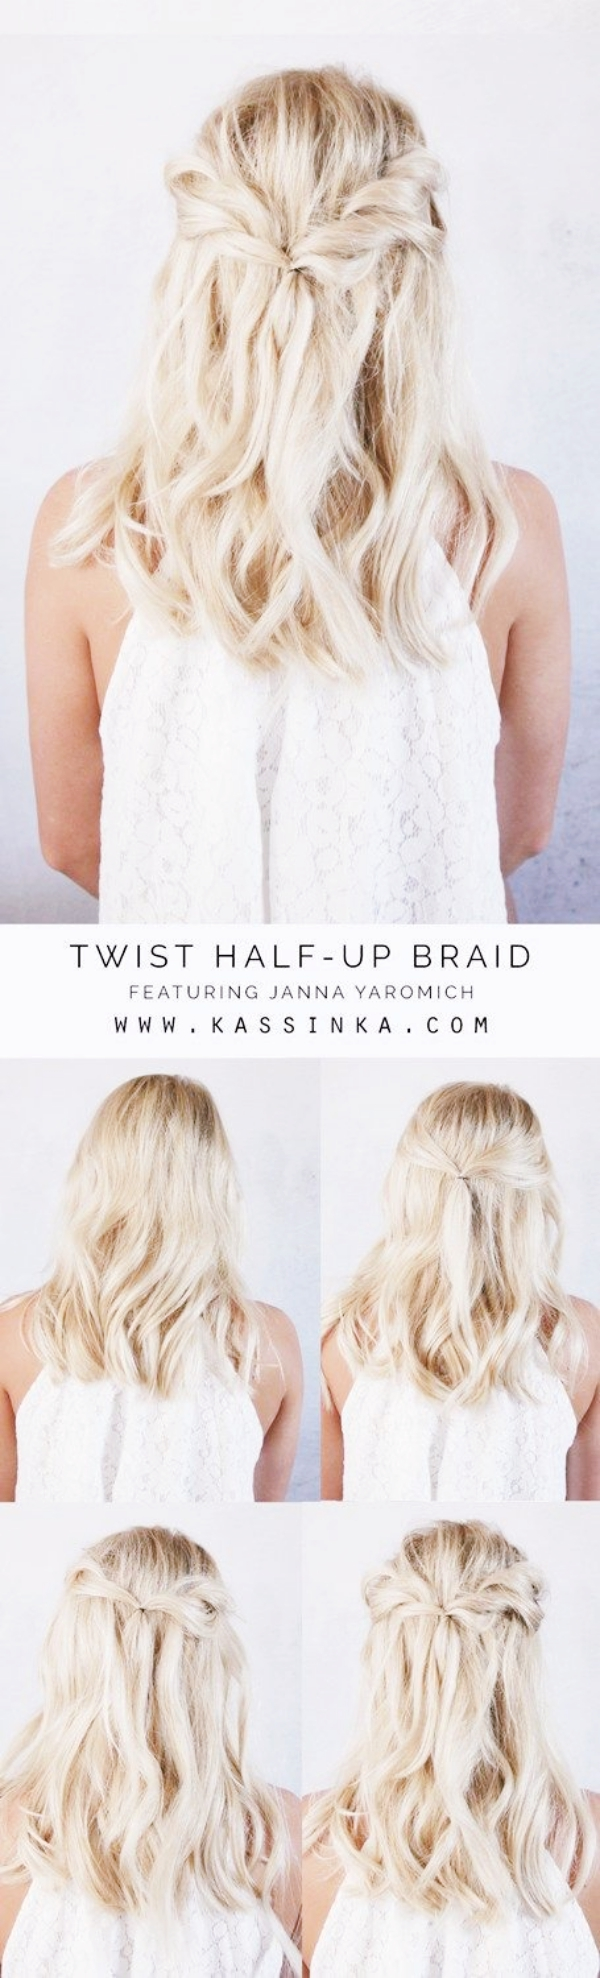 35 Perfect Wedding Hairstyles for Short Hair - Fashiondioxide